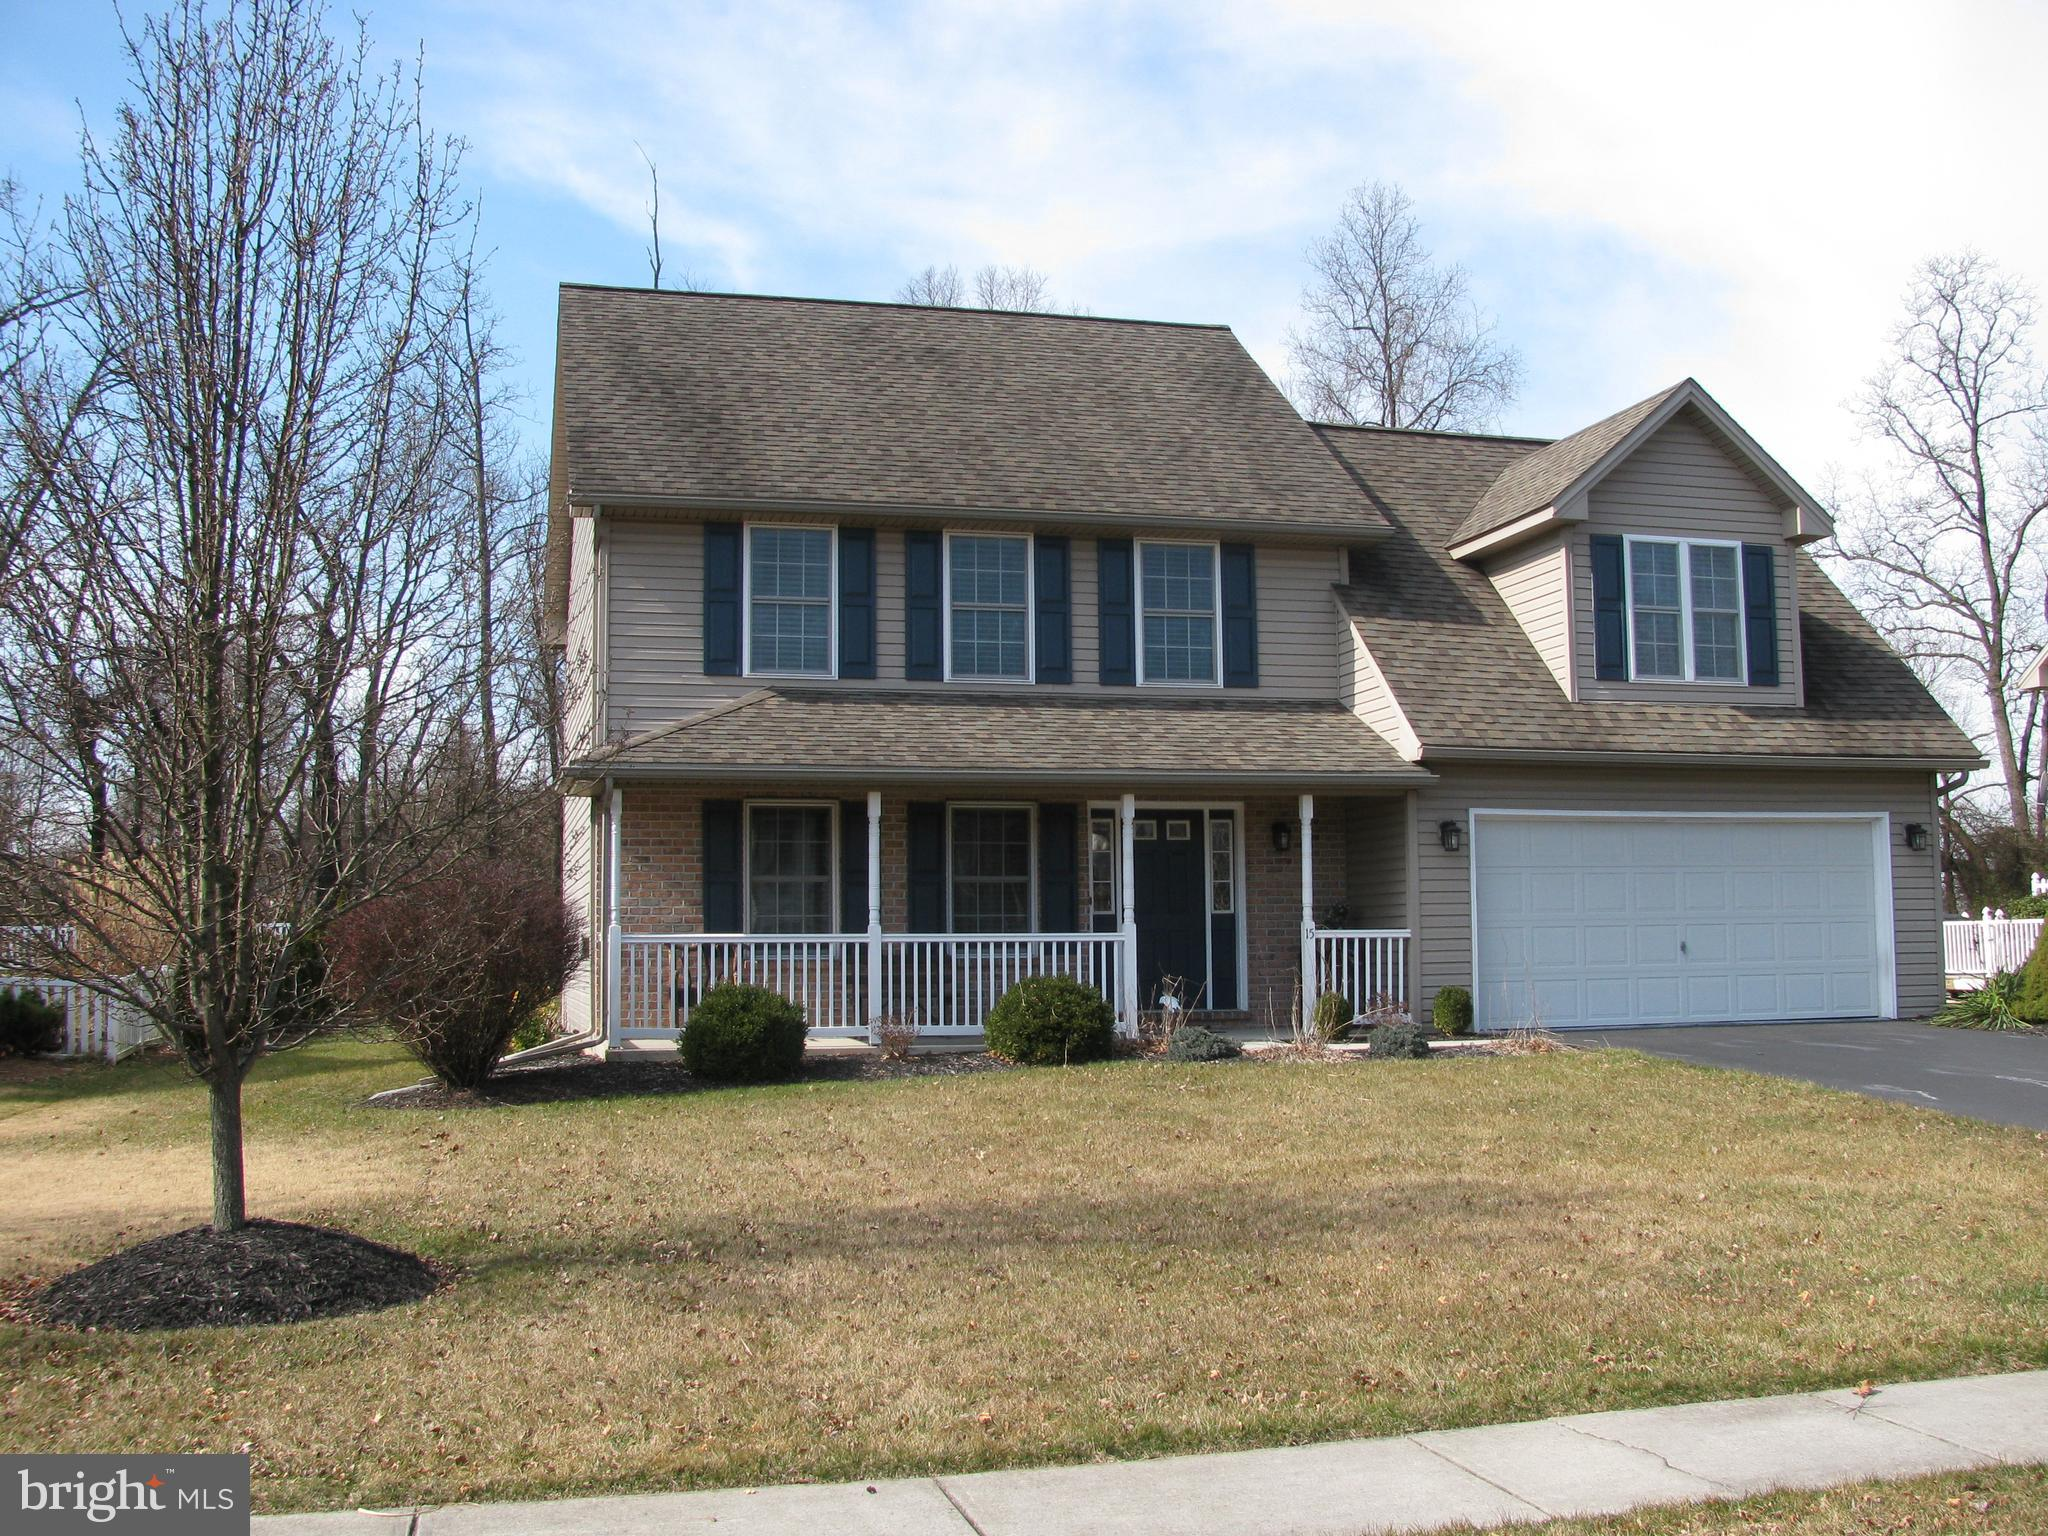 15 WESTGATE DRIVE, MOUNT HOLLY SPRINGS, PA 17065